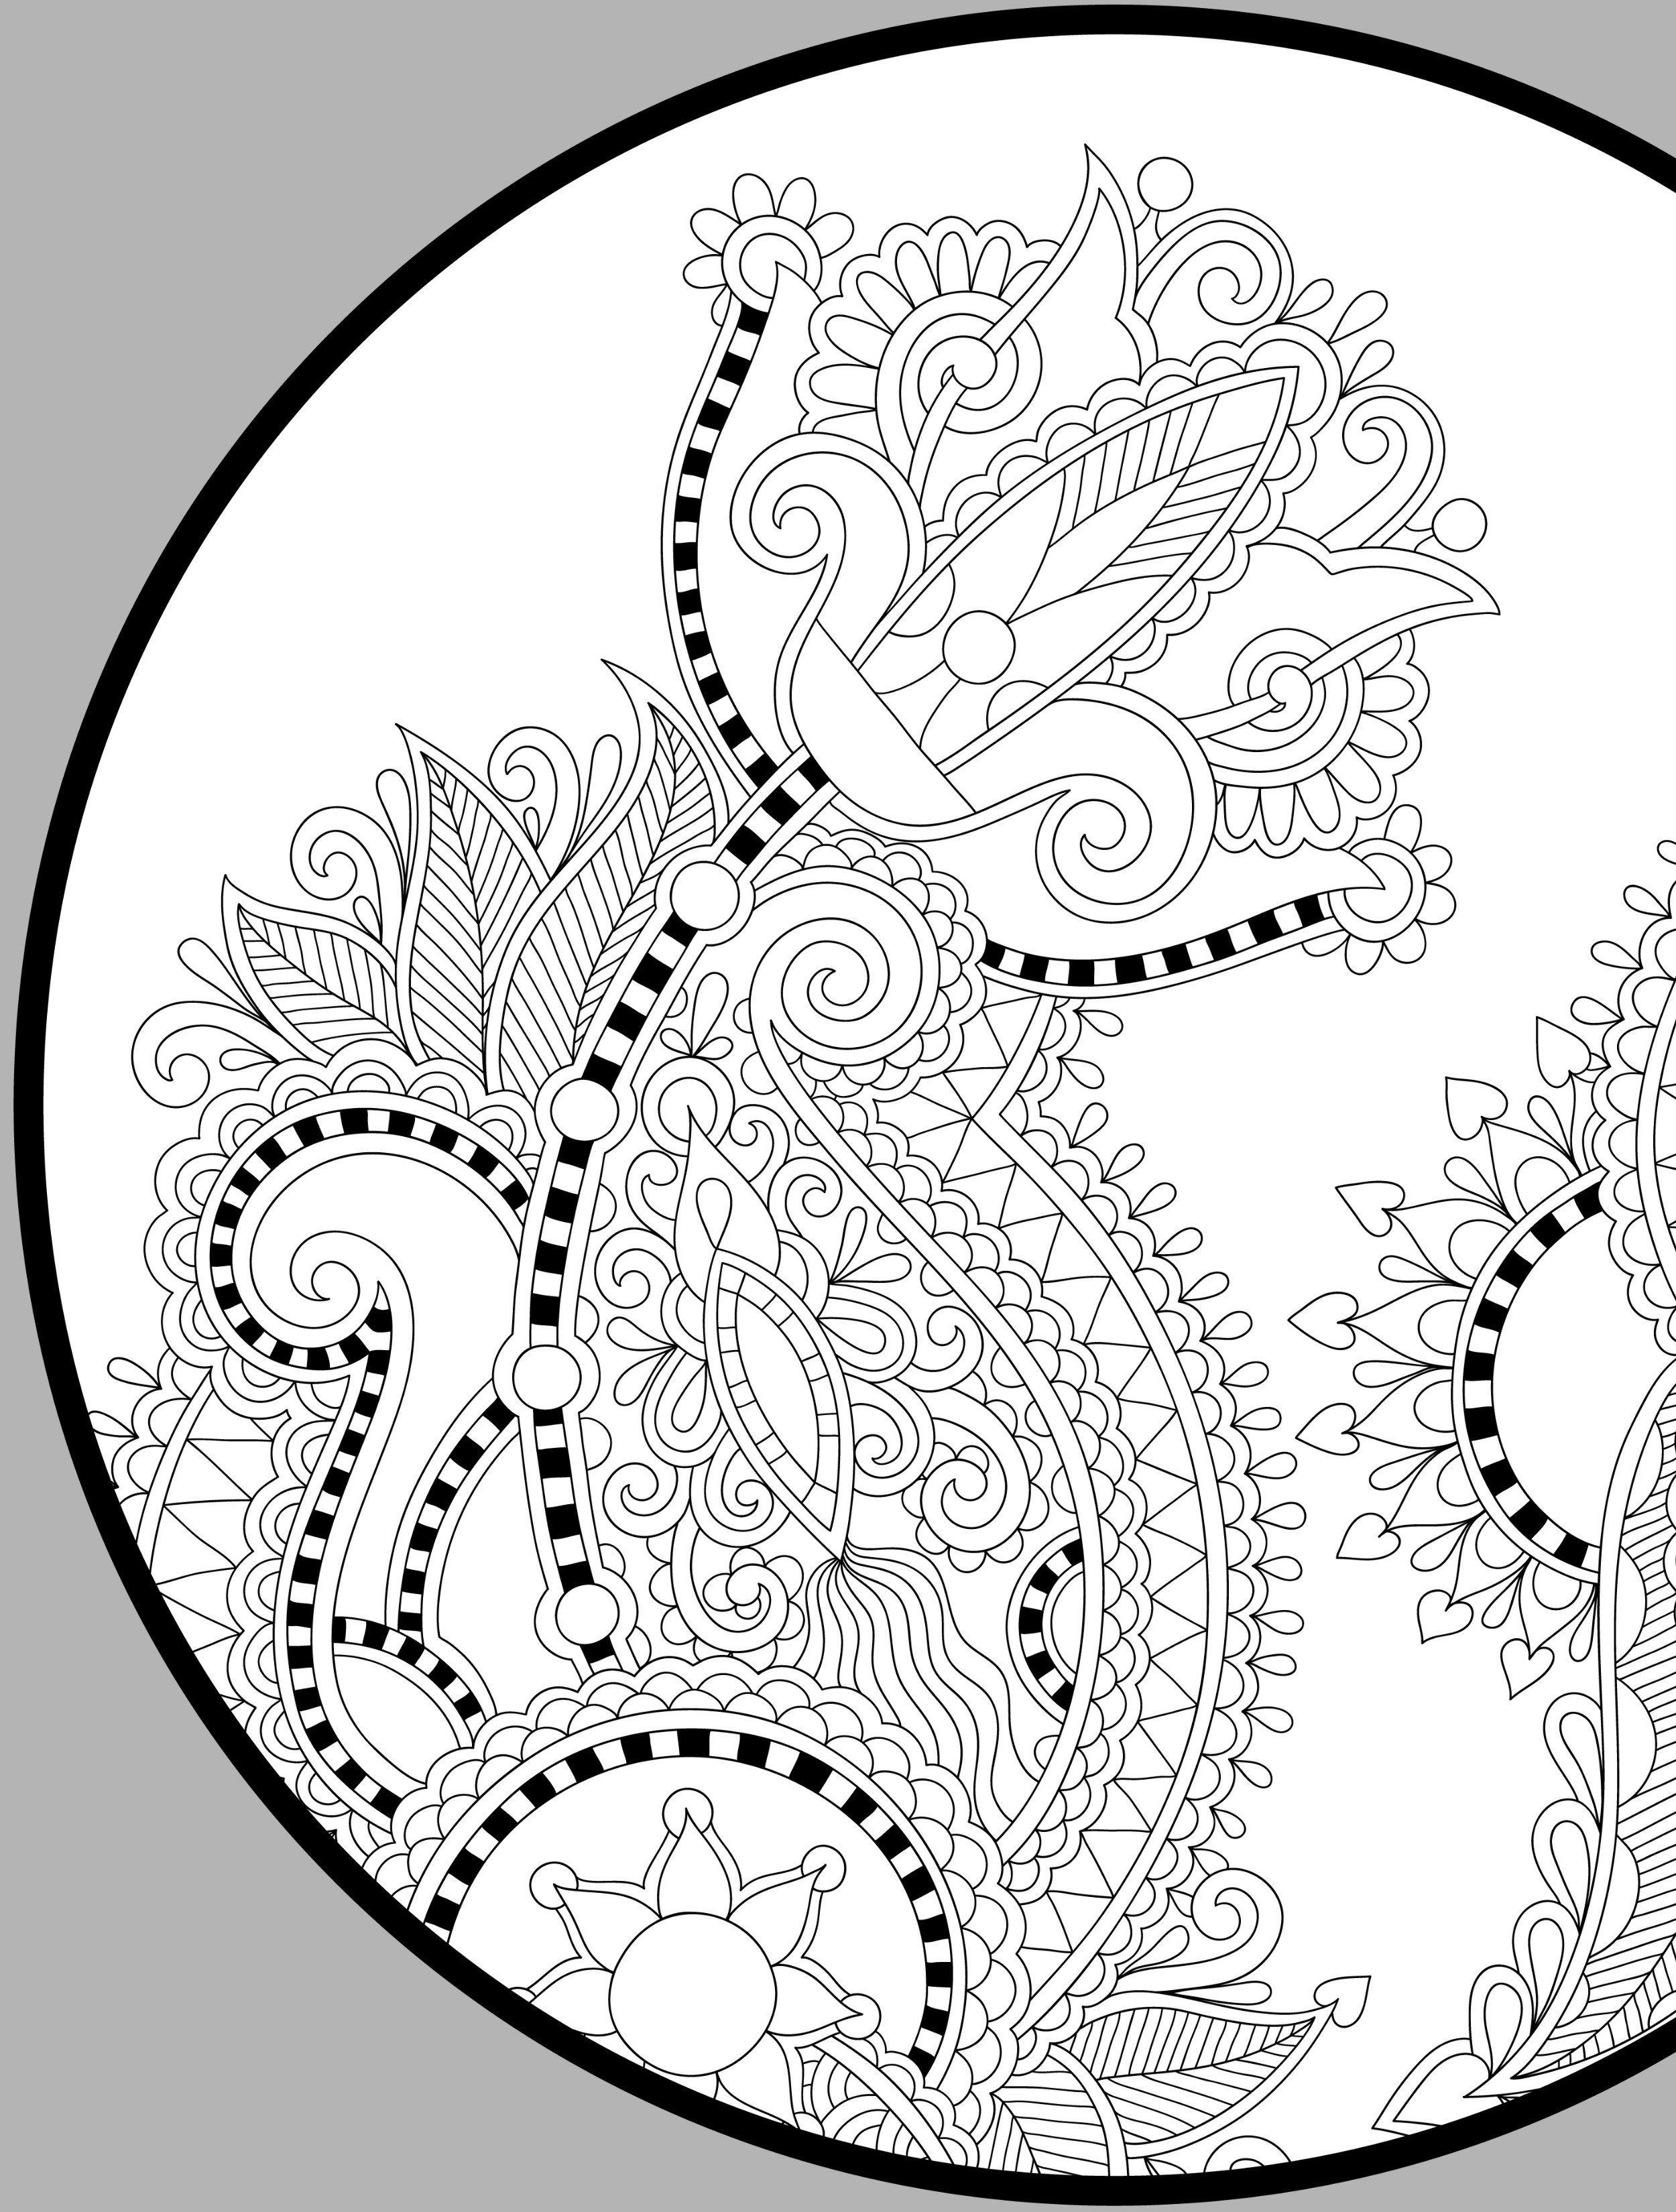 24 More Free Printable Adult Coloring Pages  Page 9 of 25  Colorear